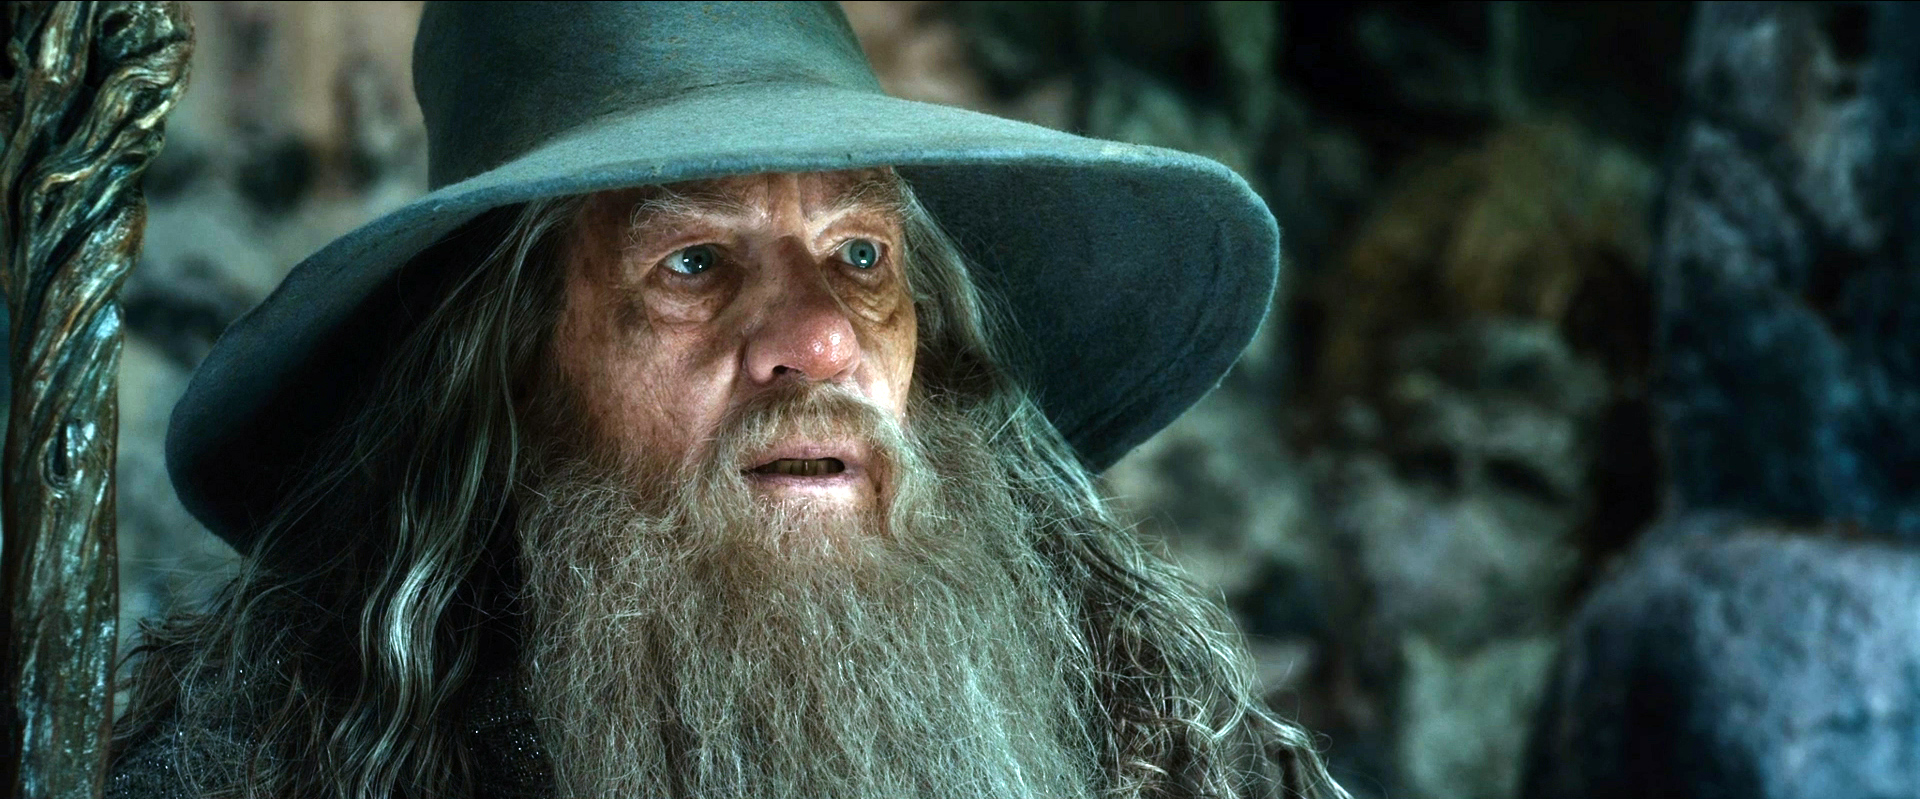 hobbit overview The hobbit summary - the hobbit by j r r tolkien summary and analysis.